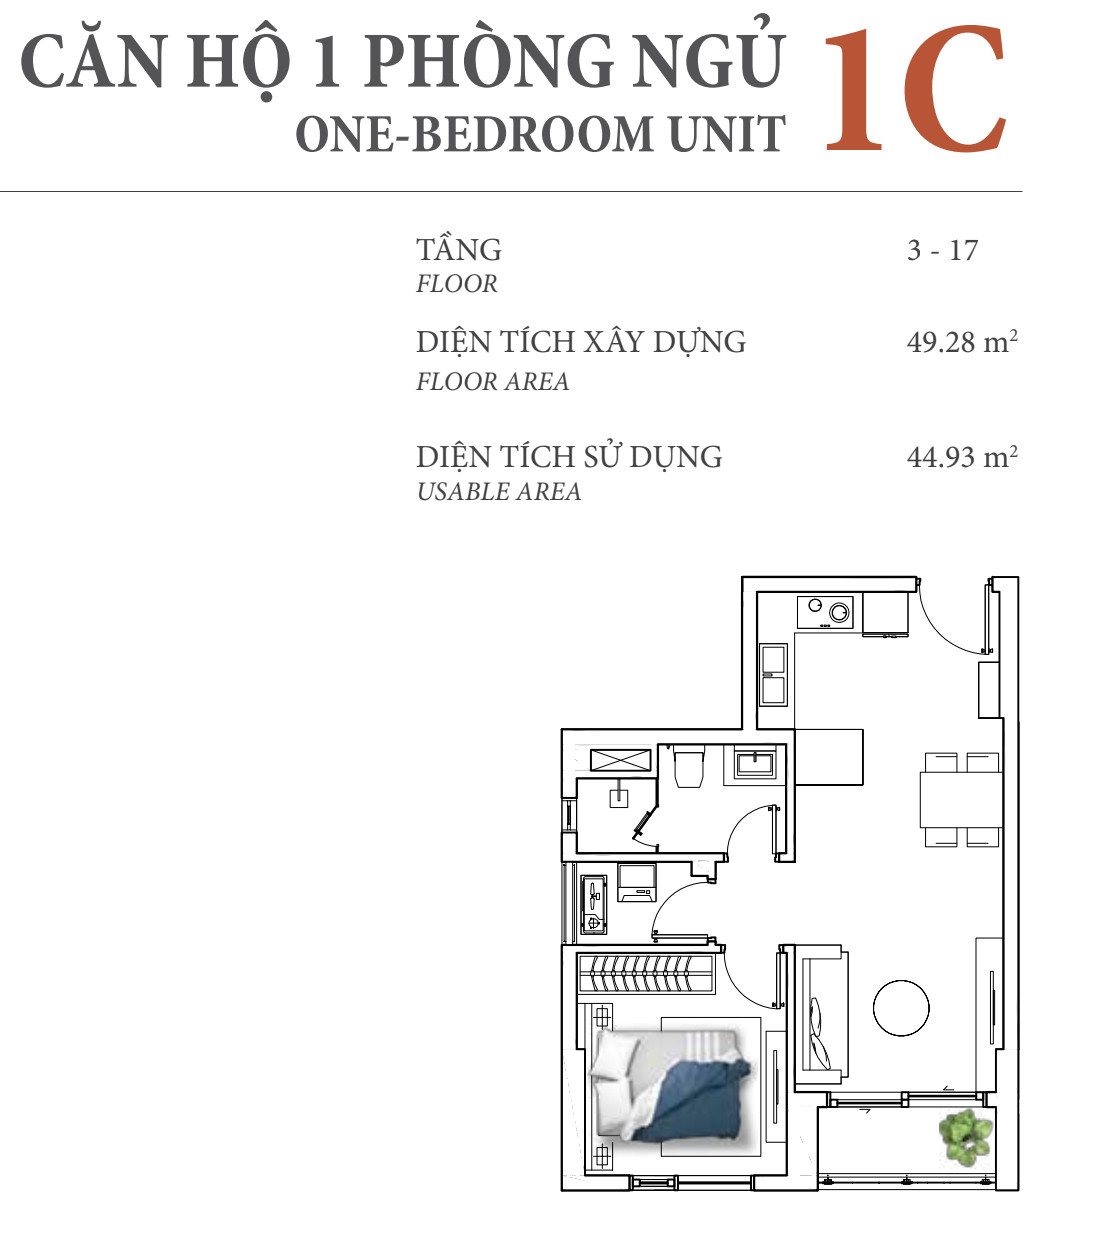 DI0990 - Diamond Island Apartment For Sale & Sale in Ho Chi Minh City - 1 bedroom